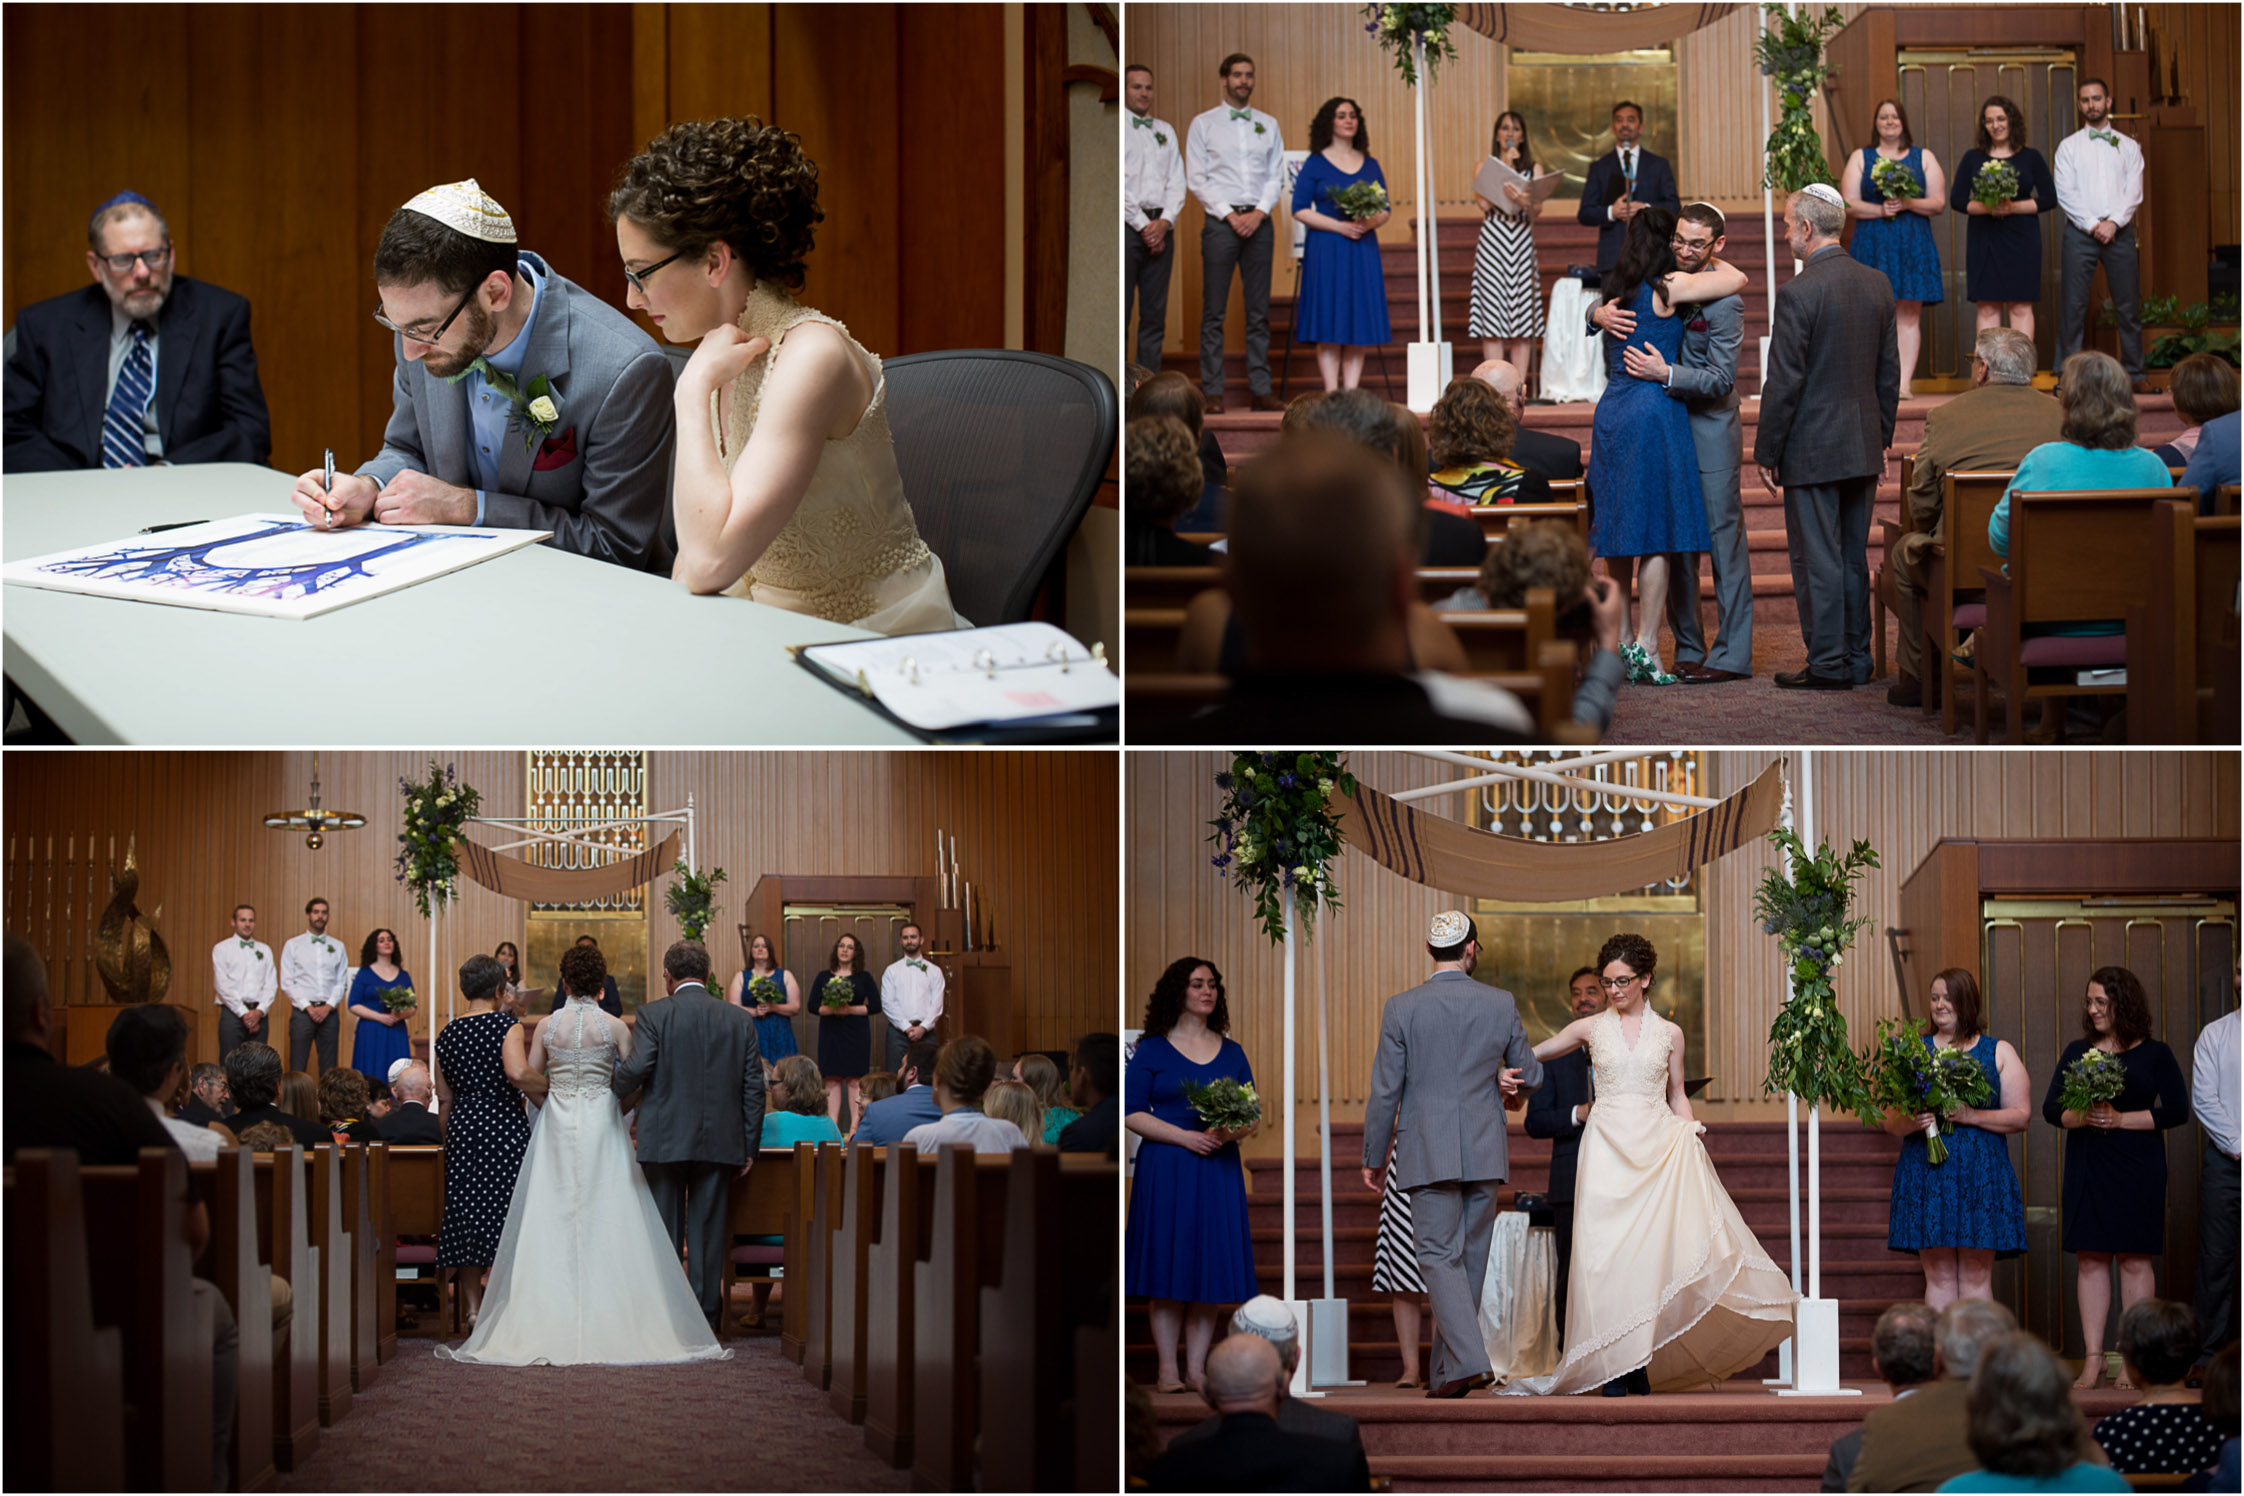 12-mount-zion-jewish-temple-wedding-ceremony-mahonen-photography.jpg